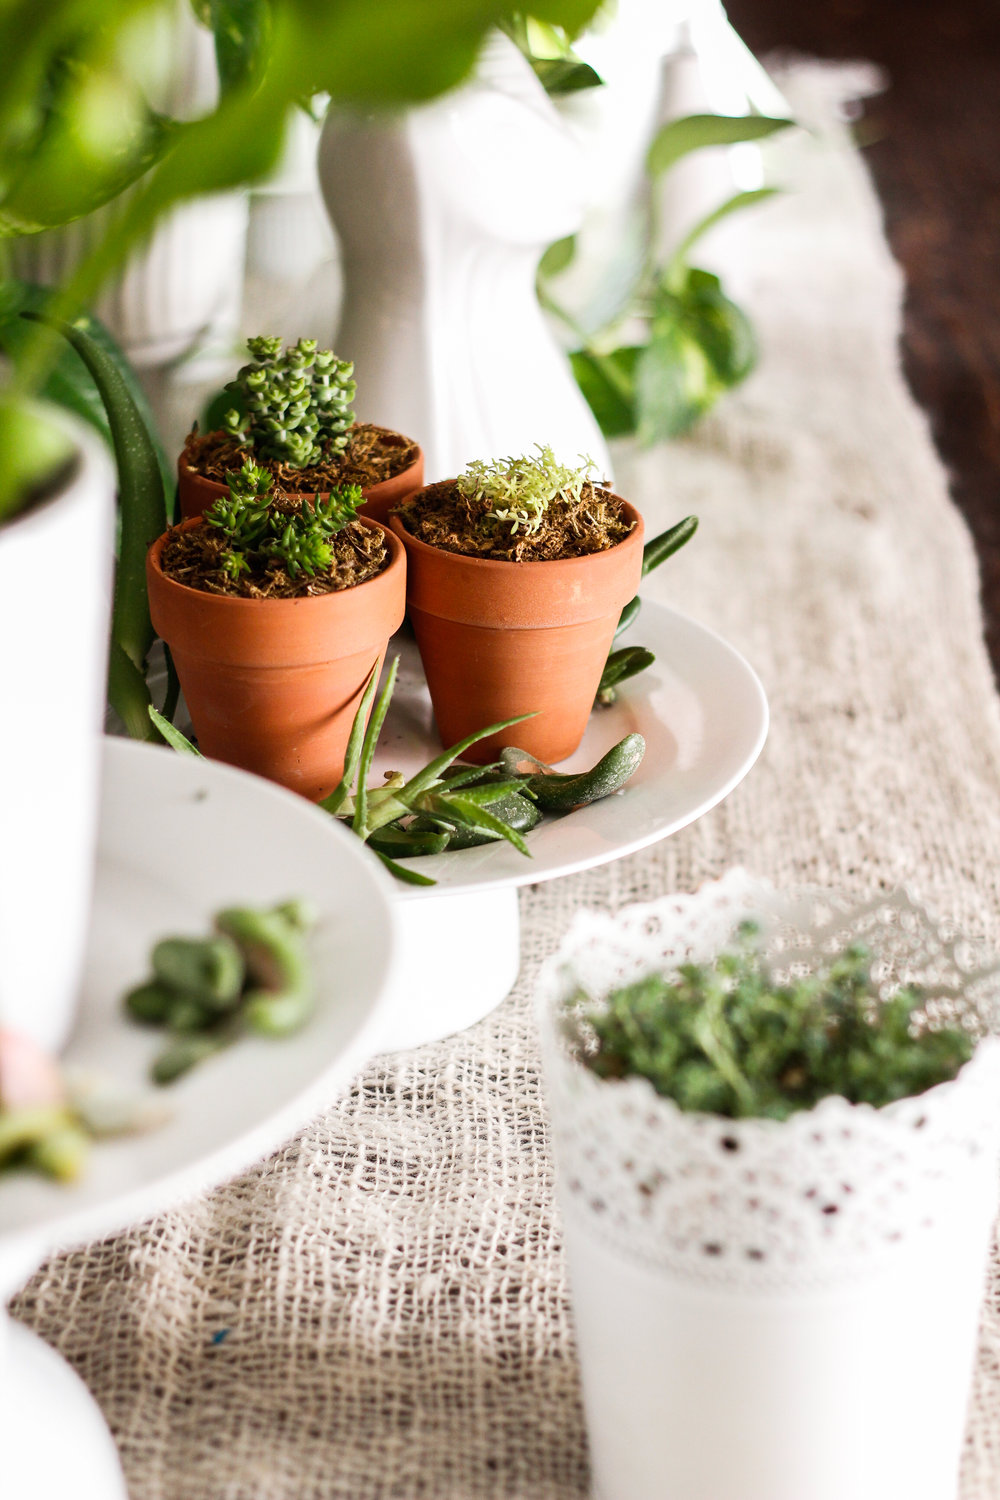 Very-Sarie-plant-table-arrangement (7 of 8).jpg